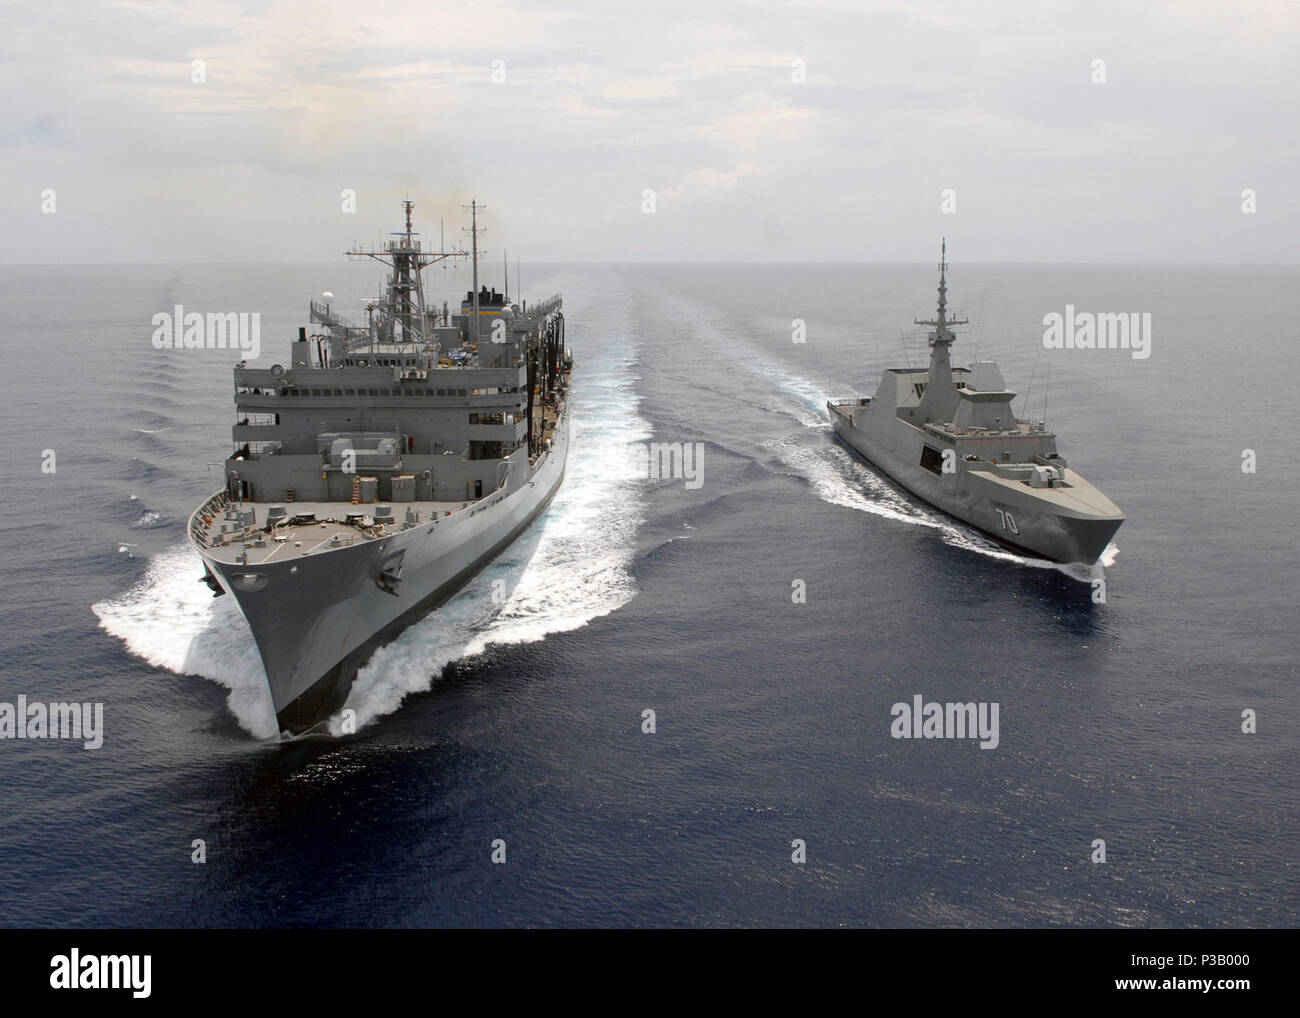 OCEAN (April 15, 2008) The Republic of Singapore Navy guided-missile frigate RSS Steadfast (FFG 70) comes alongside the Military Sealift Command fast combat support ship USNS Rainer (T-AOE 7) during a simulated refueling at sea. Rainer and other ships assigned to Carrier Strike Group 9 are on a scheduled seven-month deployment to the U.S. 5th Fleet area of responsibility.  U.S. Navy - Stock Image